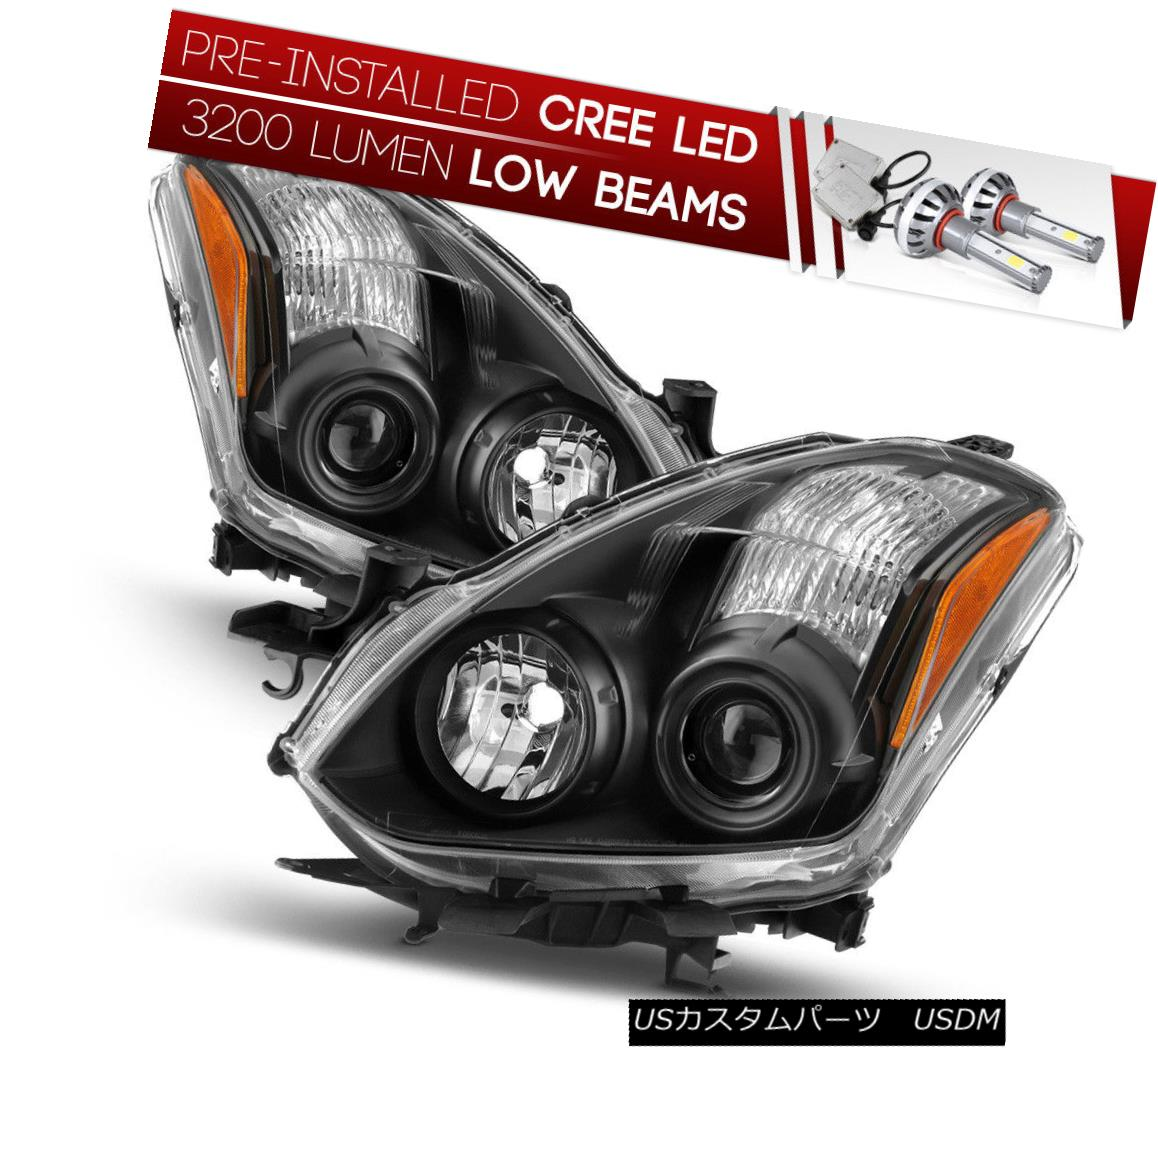 ヘッドライト [CREE LED Bulb Installed]For 10-13 Nissan Altima 2DR Black Replacement Headlight [CREE LED Bulb Installed] 10-13日産アルティマ2DRブラック交換ヘッドライト用